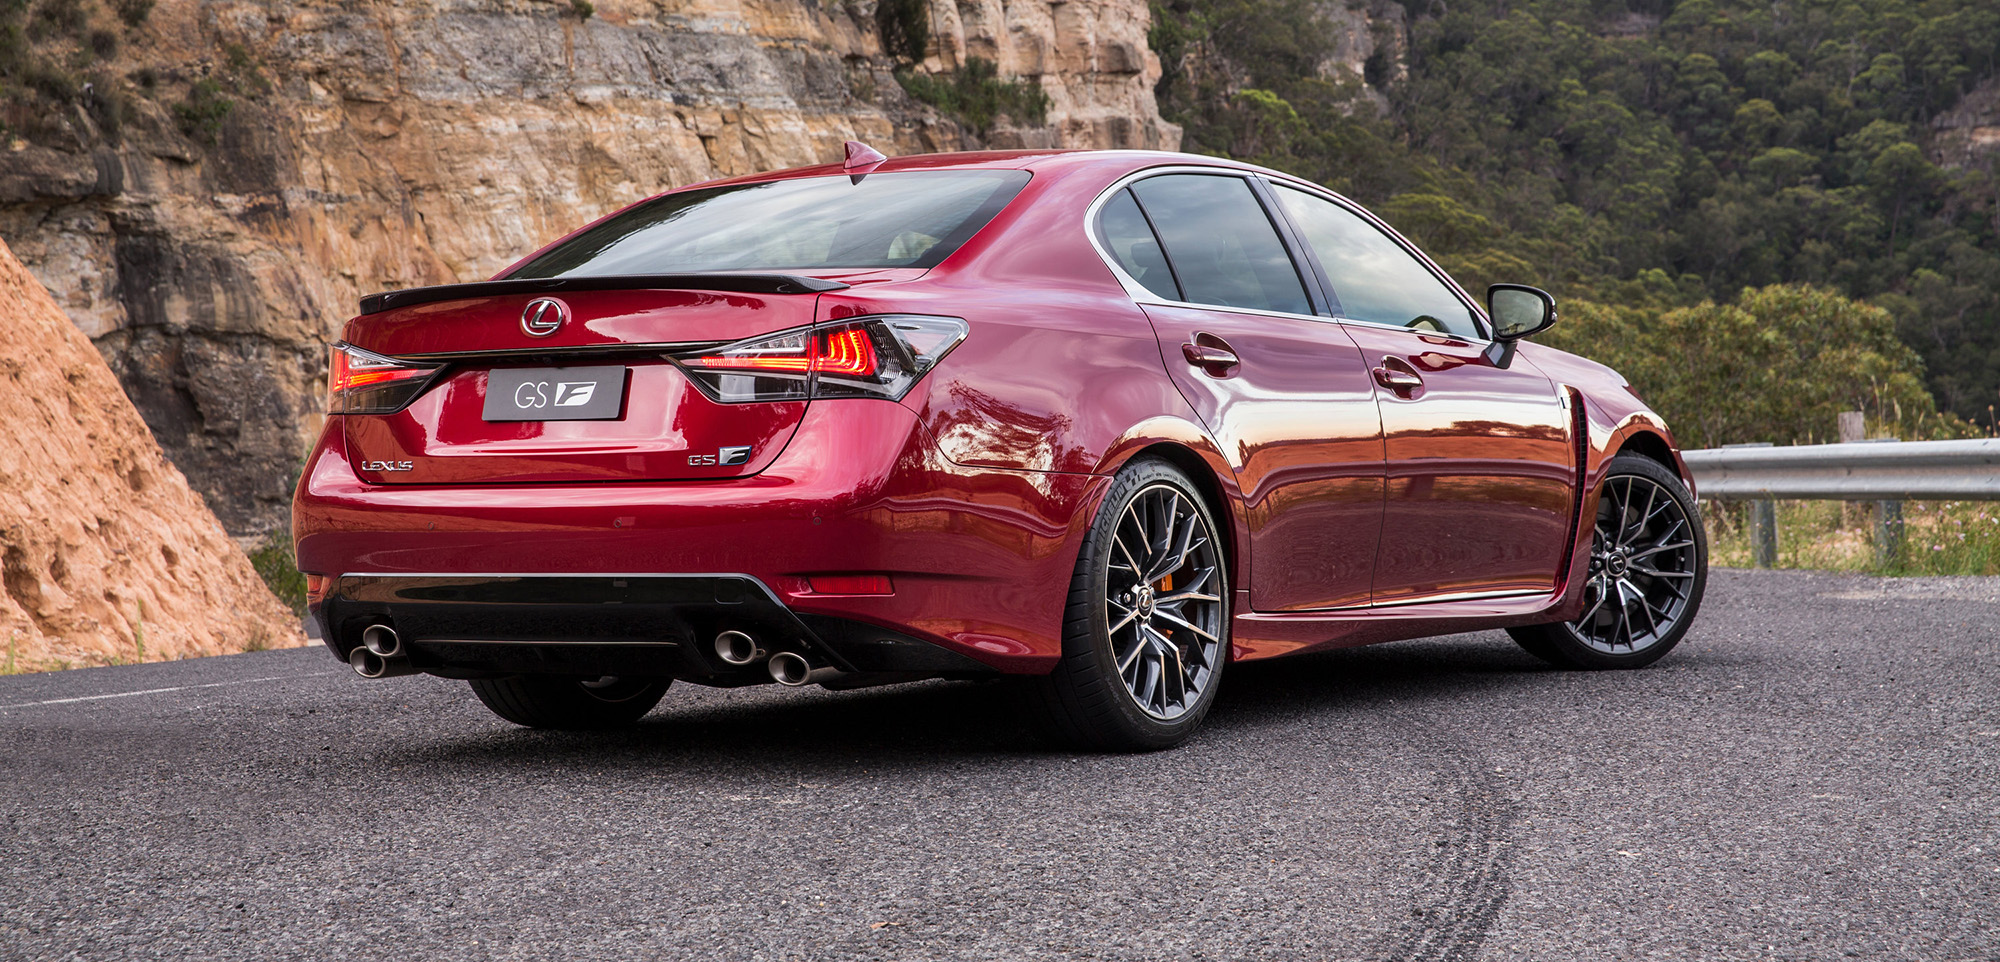 2016 Lexus GSF pricing and specifications - photos | CarAdvice